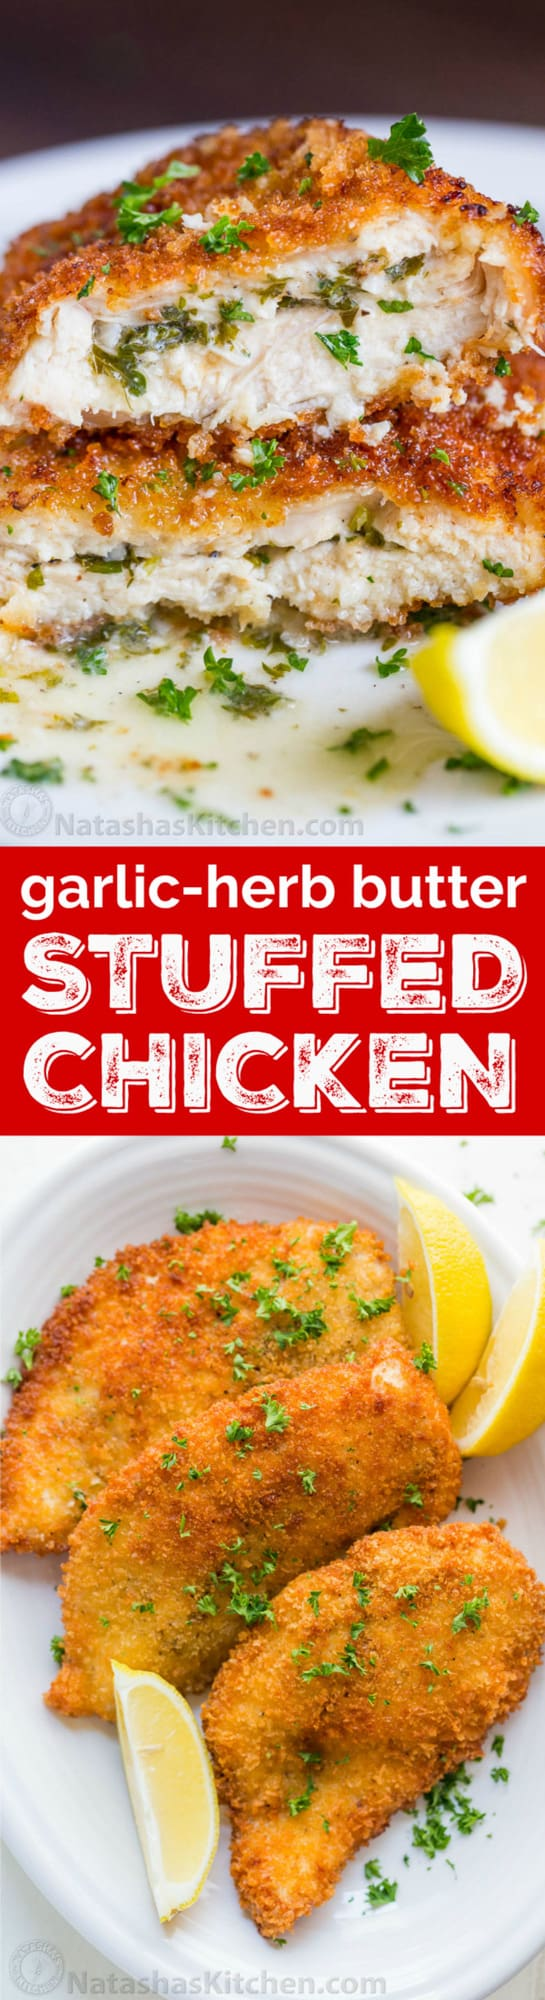 This Stuffed Chicken Recipe is no ordinary stuffed chicken breast! The first cut into the chicken produces a juicy burst of hot lemon-herb butter and makes the chicken so juicy and flavorful. The easy version of the classic Chicken Kiev. Excellent stuffed chicken recipes!